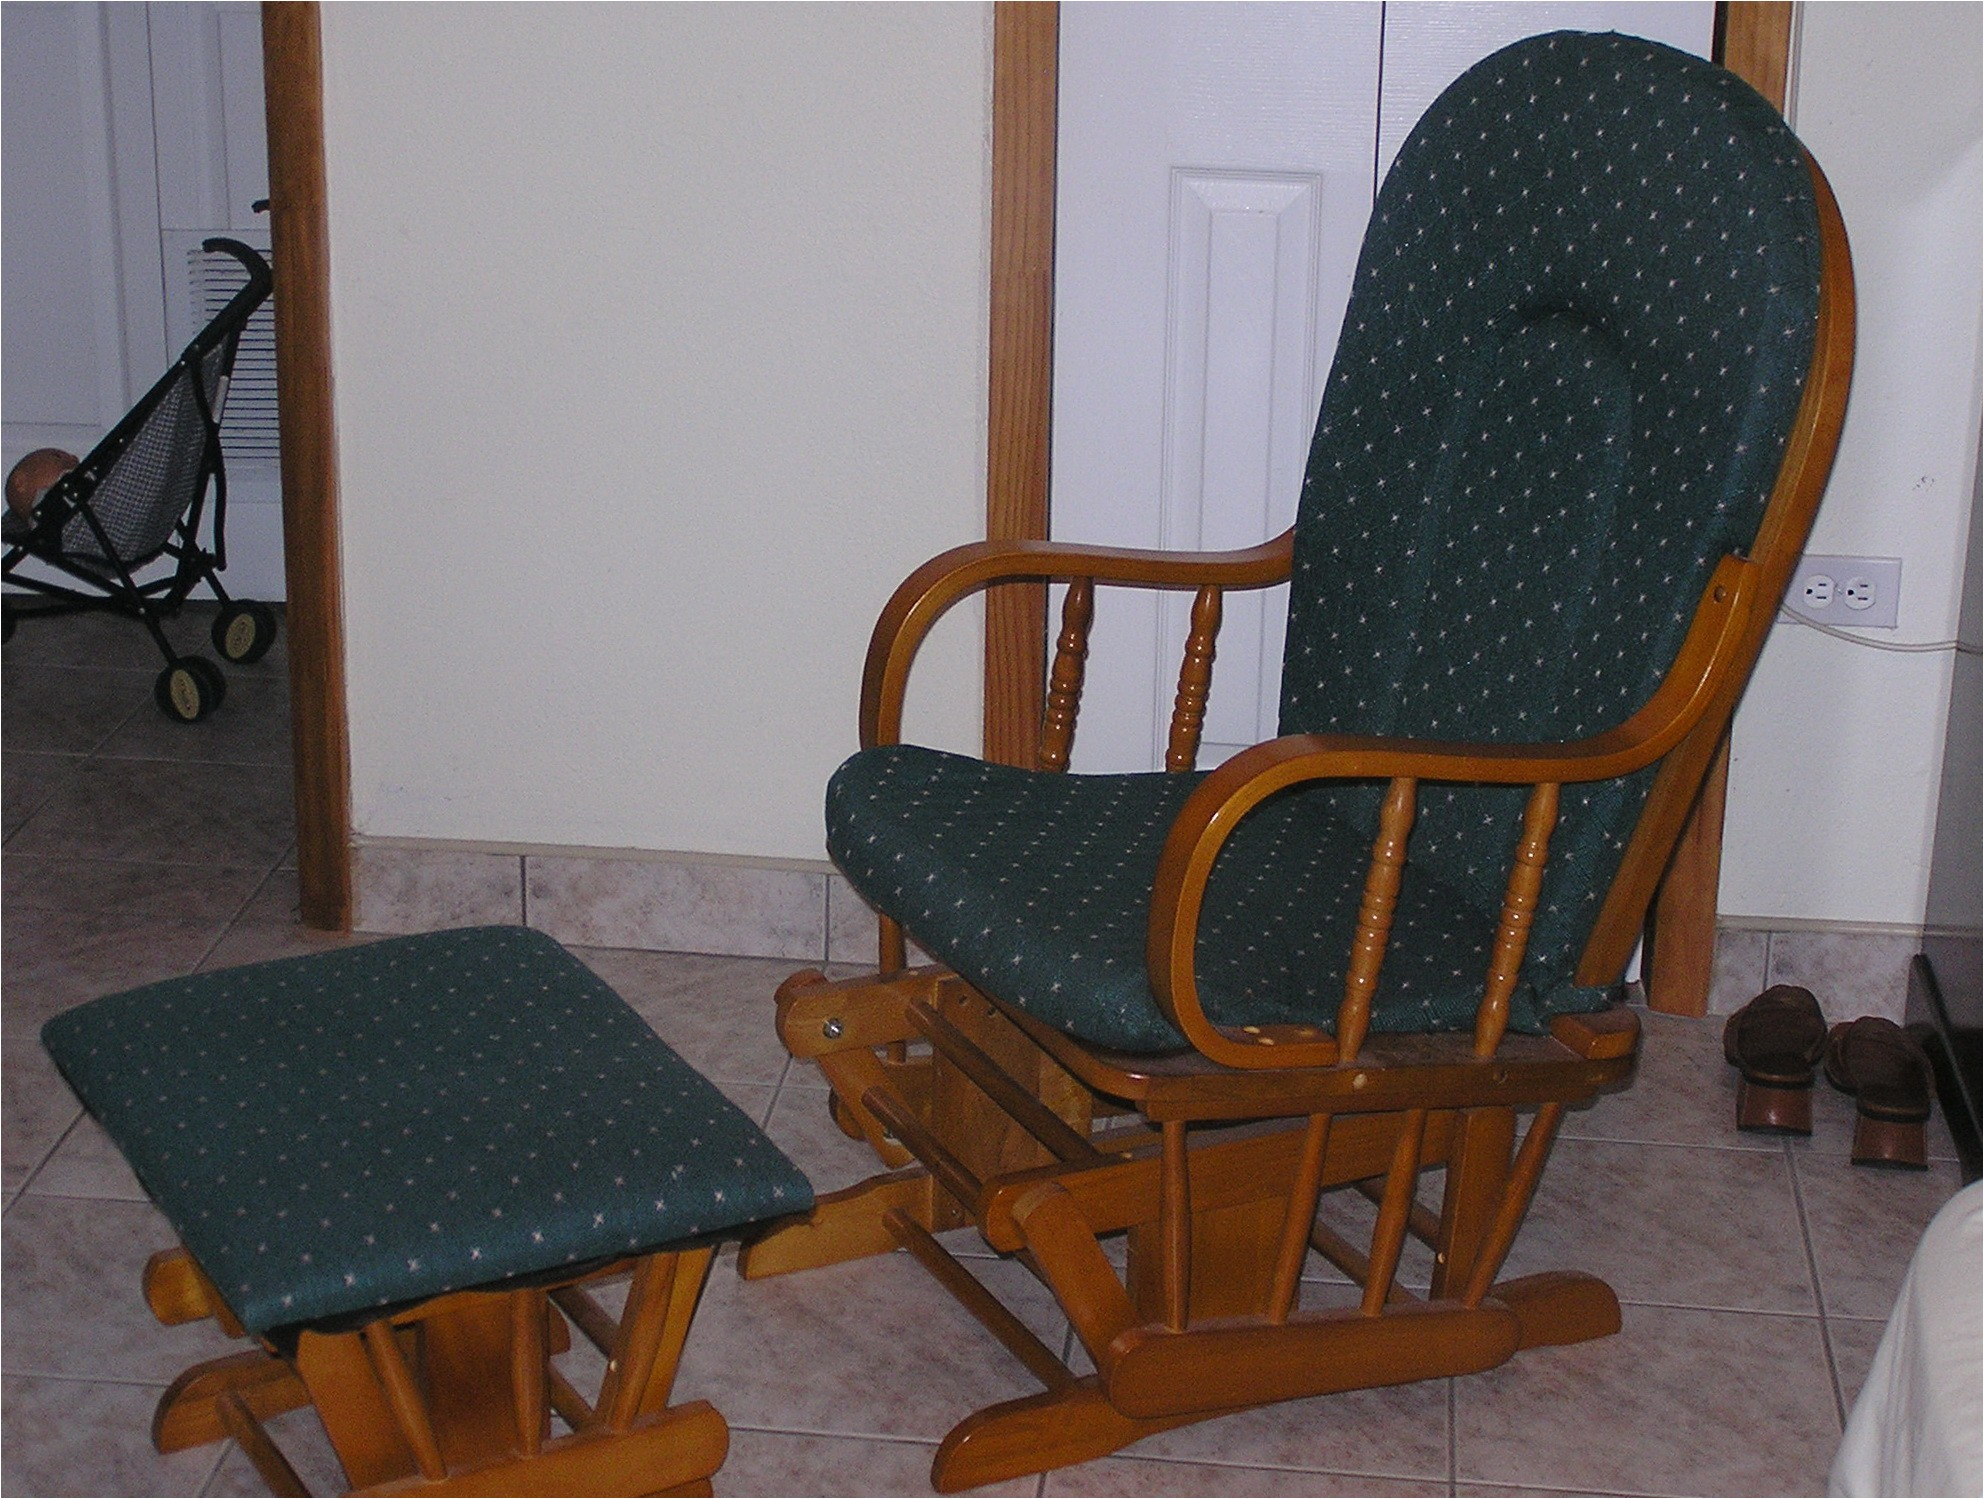 Glider Rocker Replacement Cushions with Snaps Glider Rocker Replacement Cushions with Snaps Home